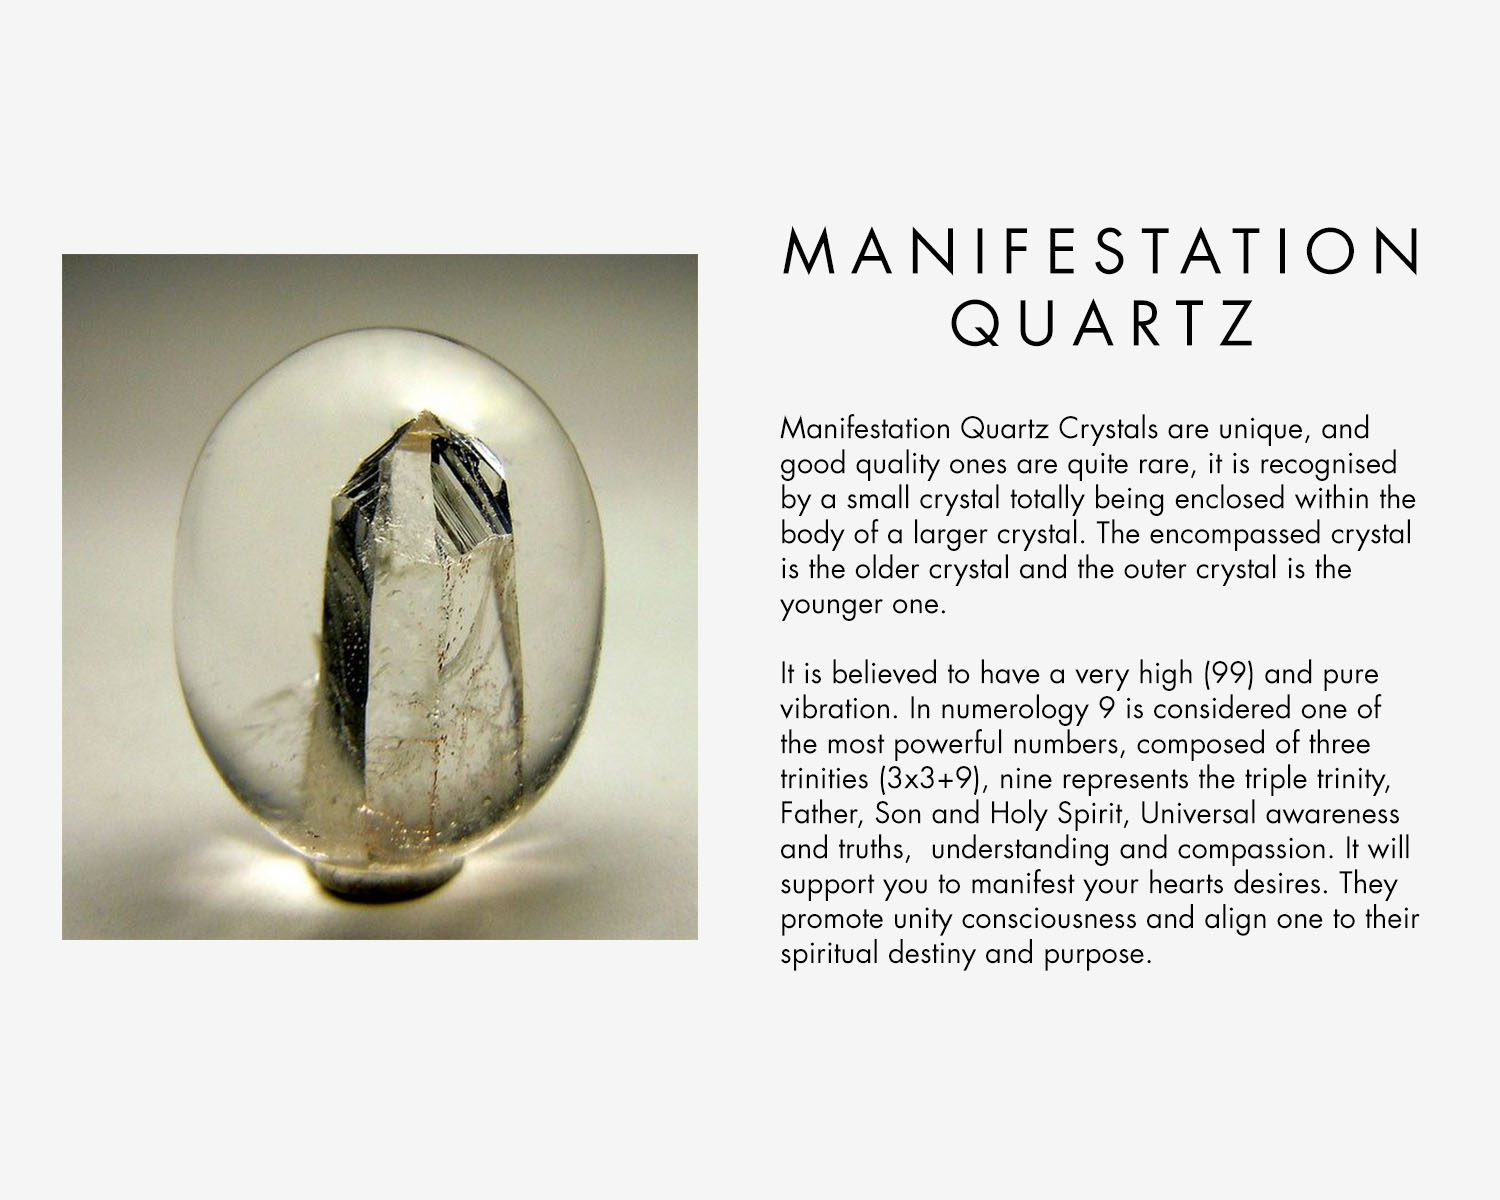 Manifestation Quartz Crystals are unique, and good quality ones are quite rare, it is recognised by a small crystal totally being enclosed within the body of a larger crystal. The encompassed crystal is the older crystal and the outer crystal is the younger one. It is believed to have a very high (99) and pure vibration. In numerology 9 is considered one of the most powerful numbers, composed of three trinities (3x3+9), nine represents the triple trinity, Father, Son and Holy Spirit, Universal awareness and truths, understanding and compassion. It will support you to manifest your hearts desires. They promote unity consciousness and align one to their spiritual destiny and purpose.